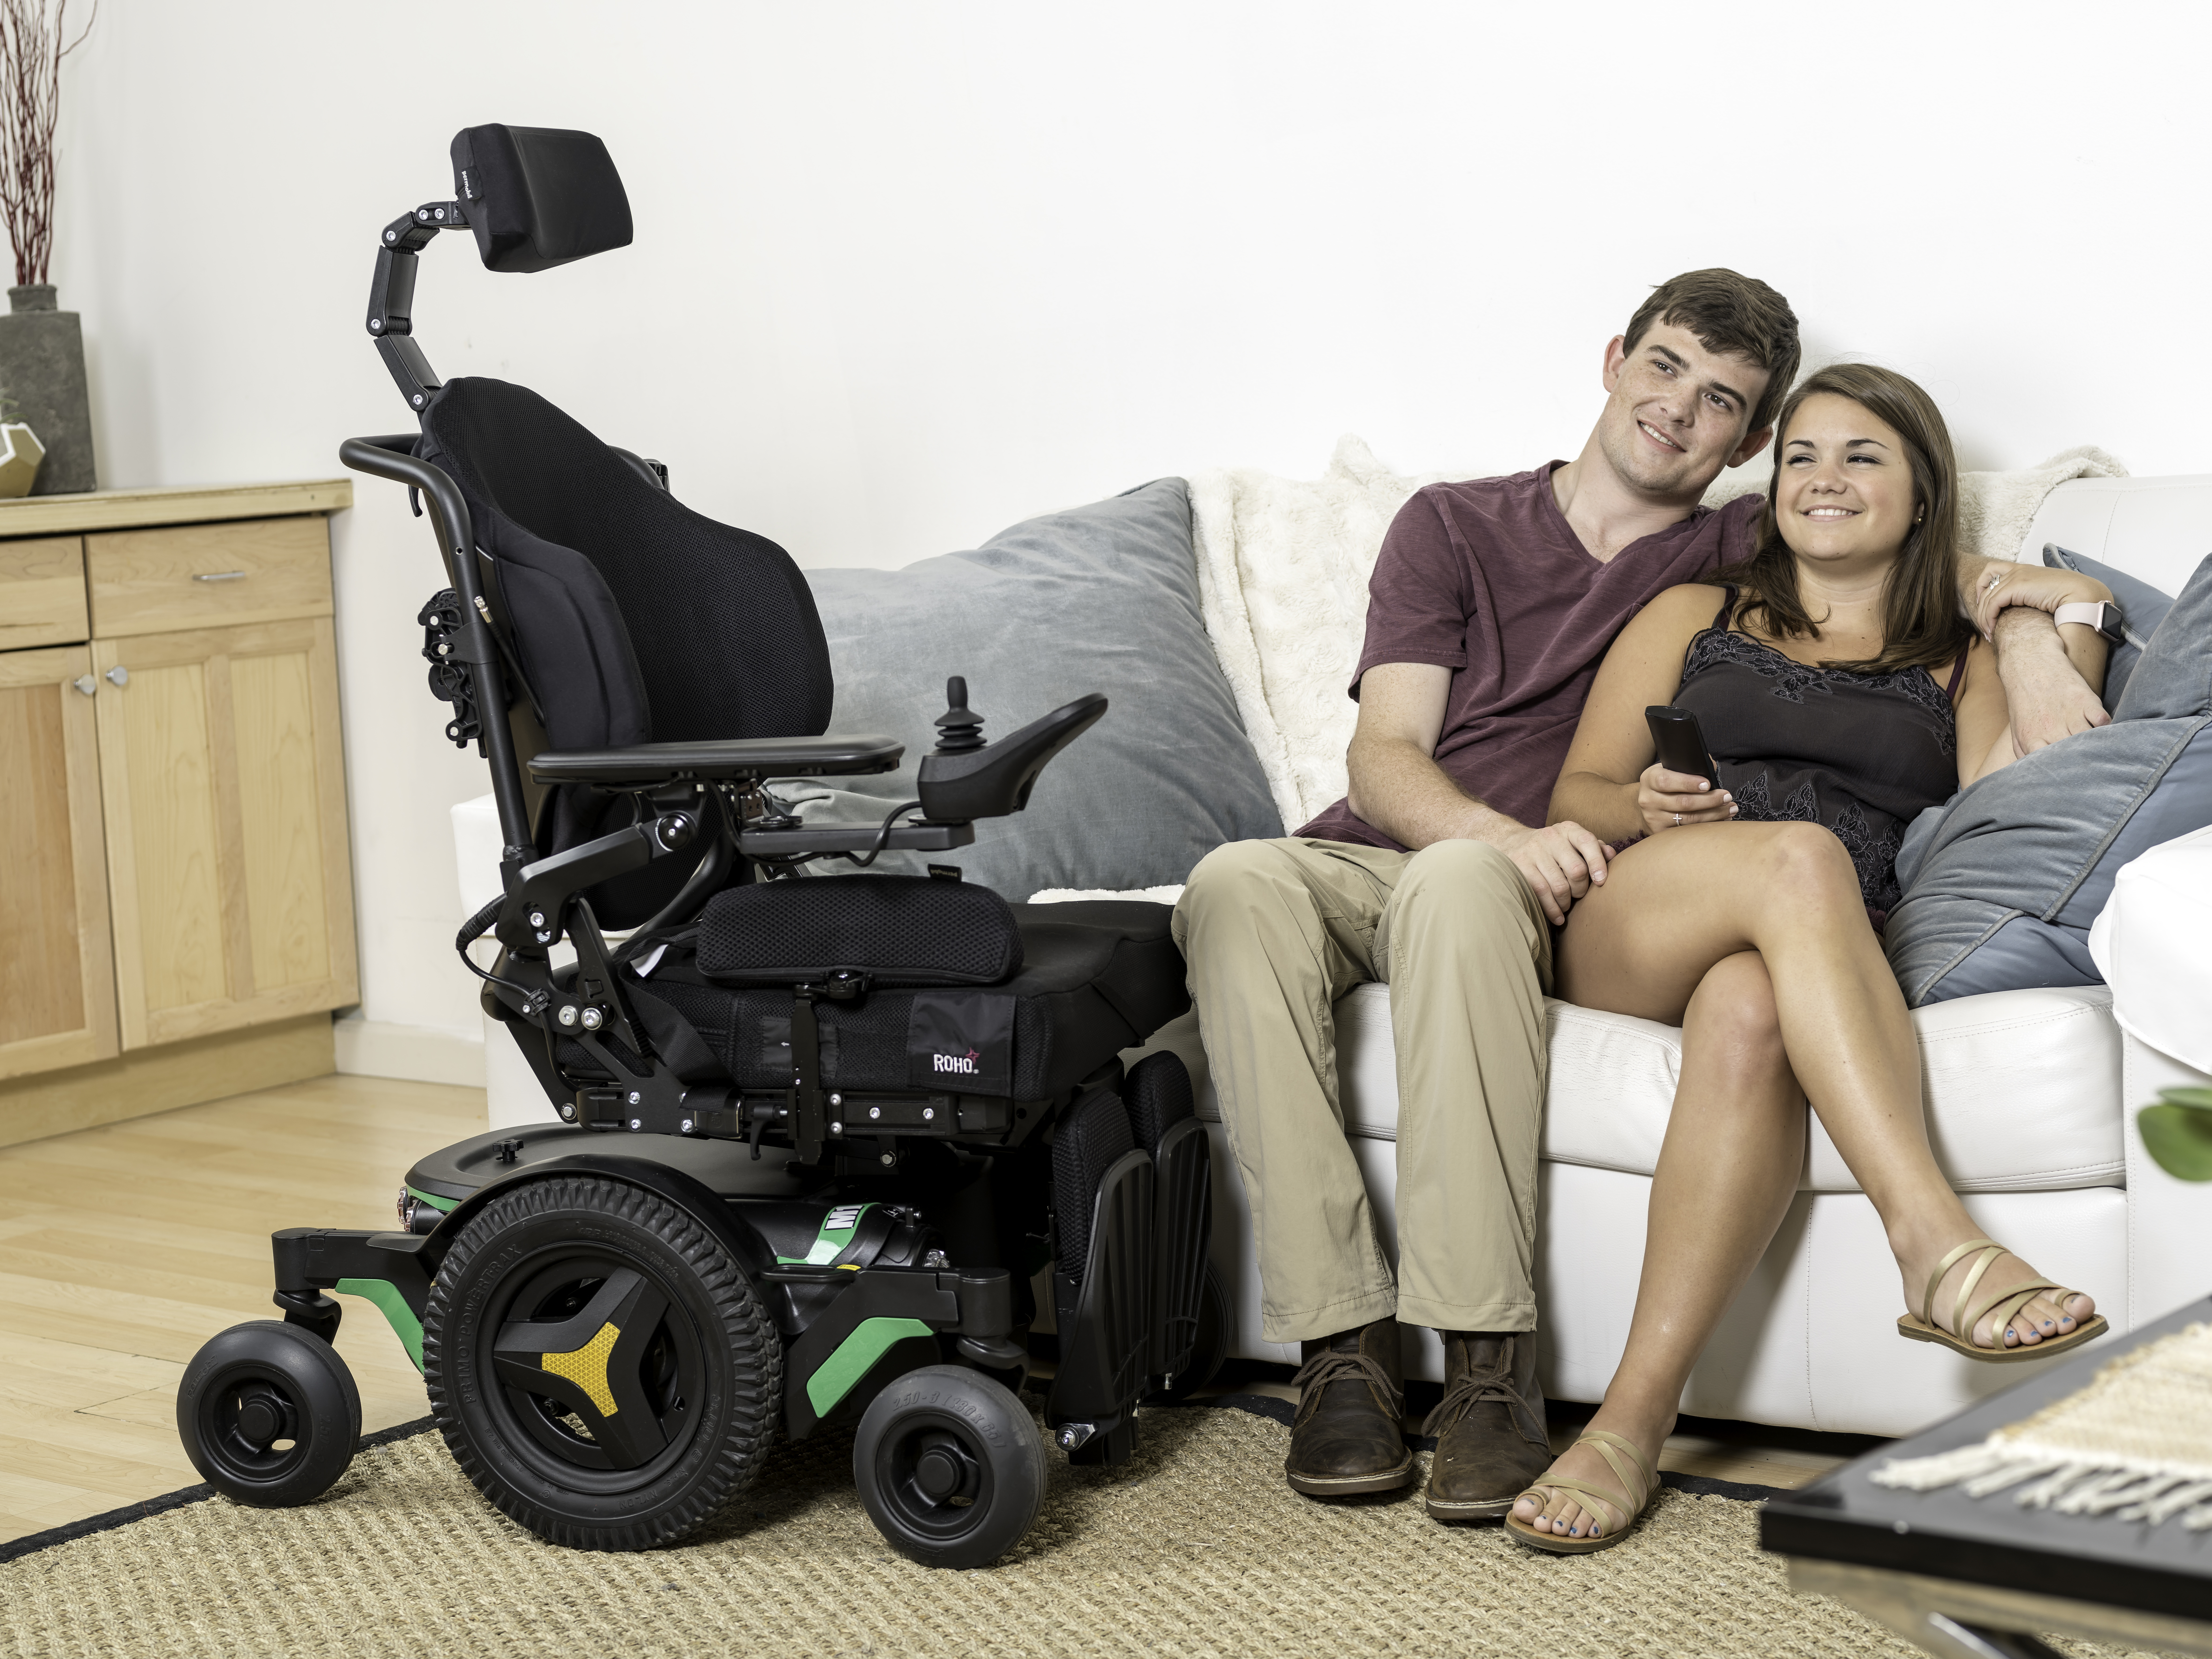 M1 indoor powerchair clinical mobility solutions parked next to a couple sitting on a sofa